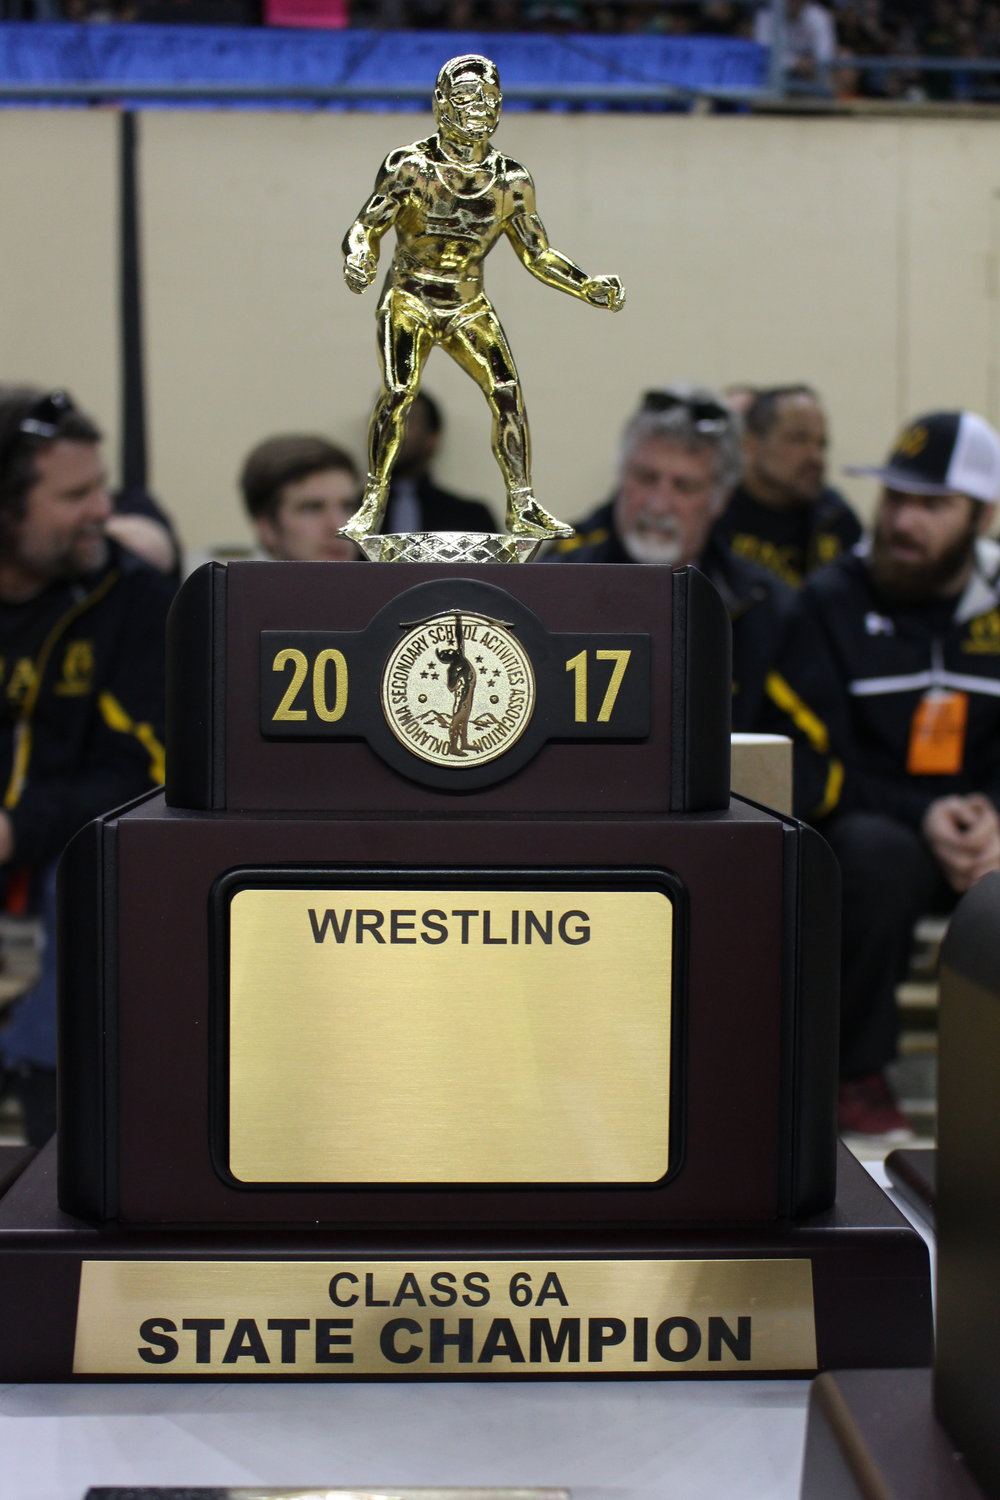 Sand Springs brought home the gold for the first time since 1971.